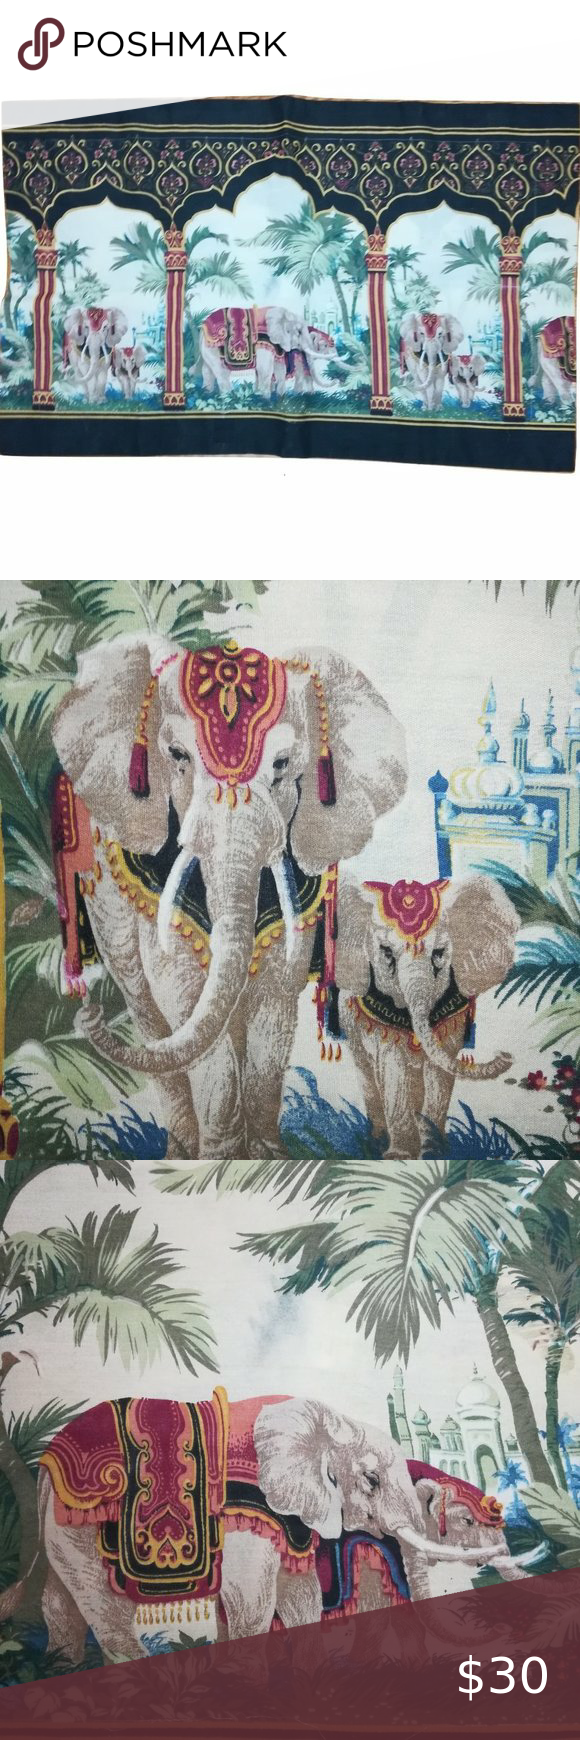 Elephants of India Huge Oversized Pillow Sham Made in India 40.25 inches Long